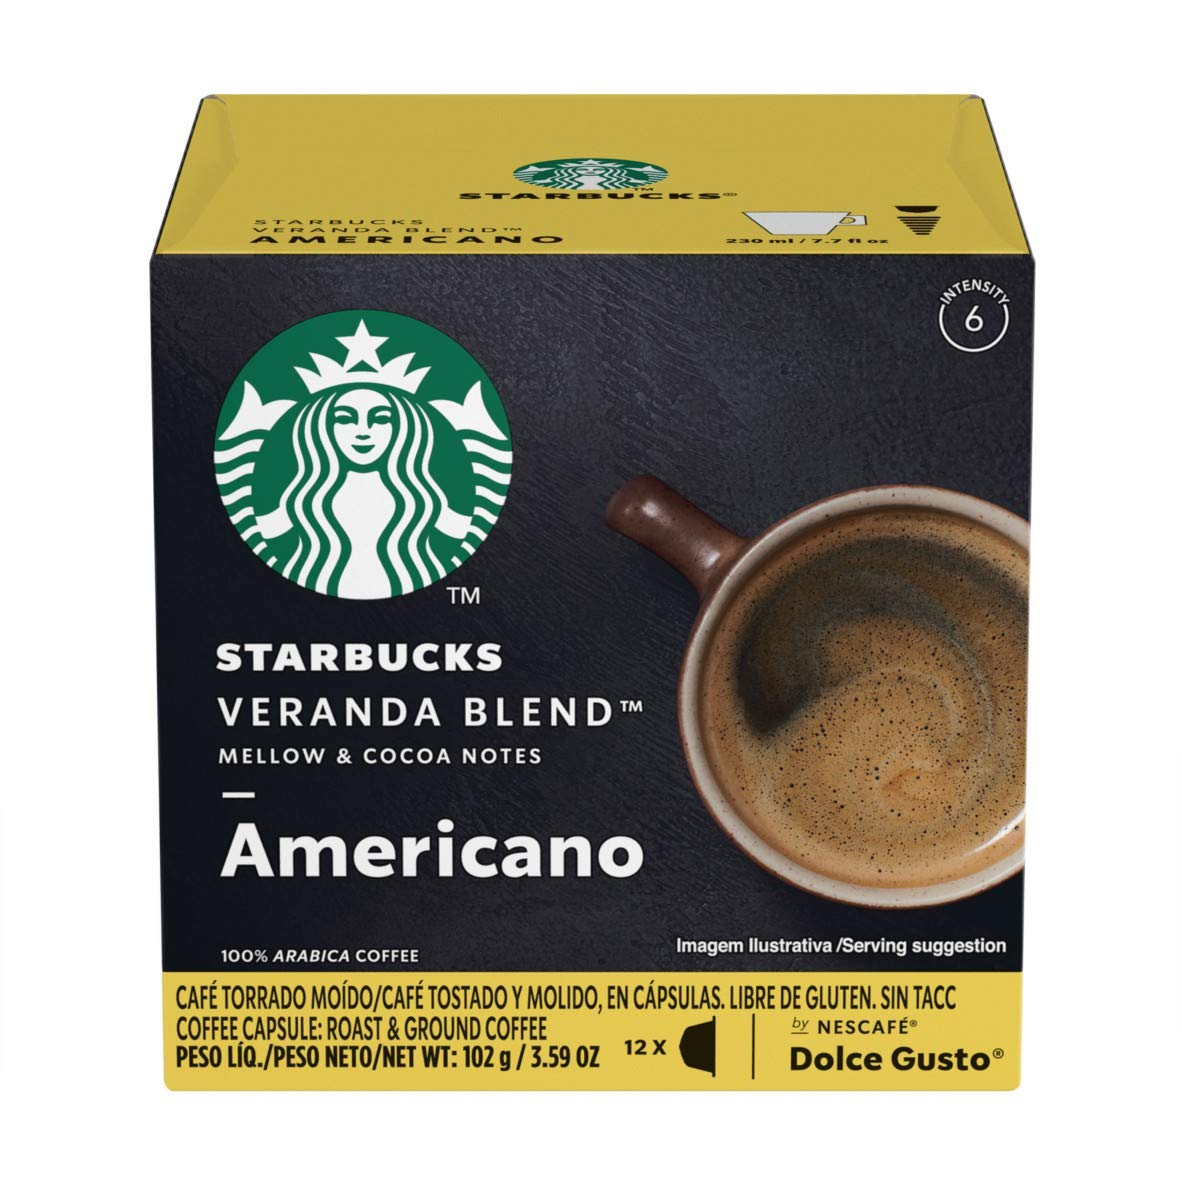 Starbucks Coffee by Nescafe Dolce Gusto, Starbucks Veranda Blend Americano, Coffee Pods, 12 capsules, Pack of 3